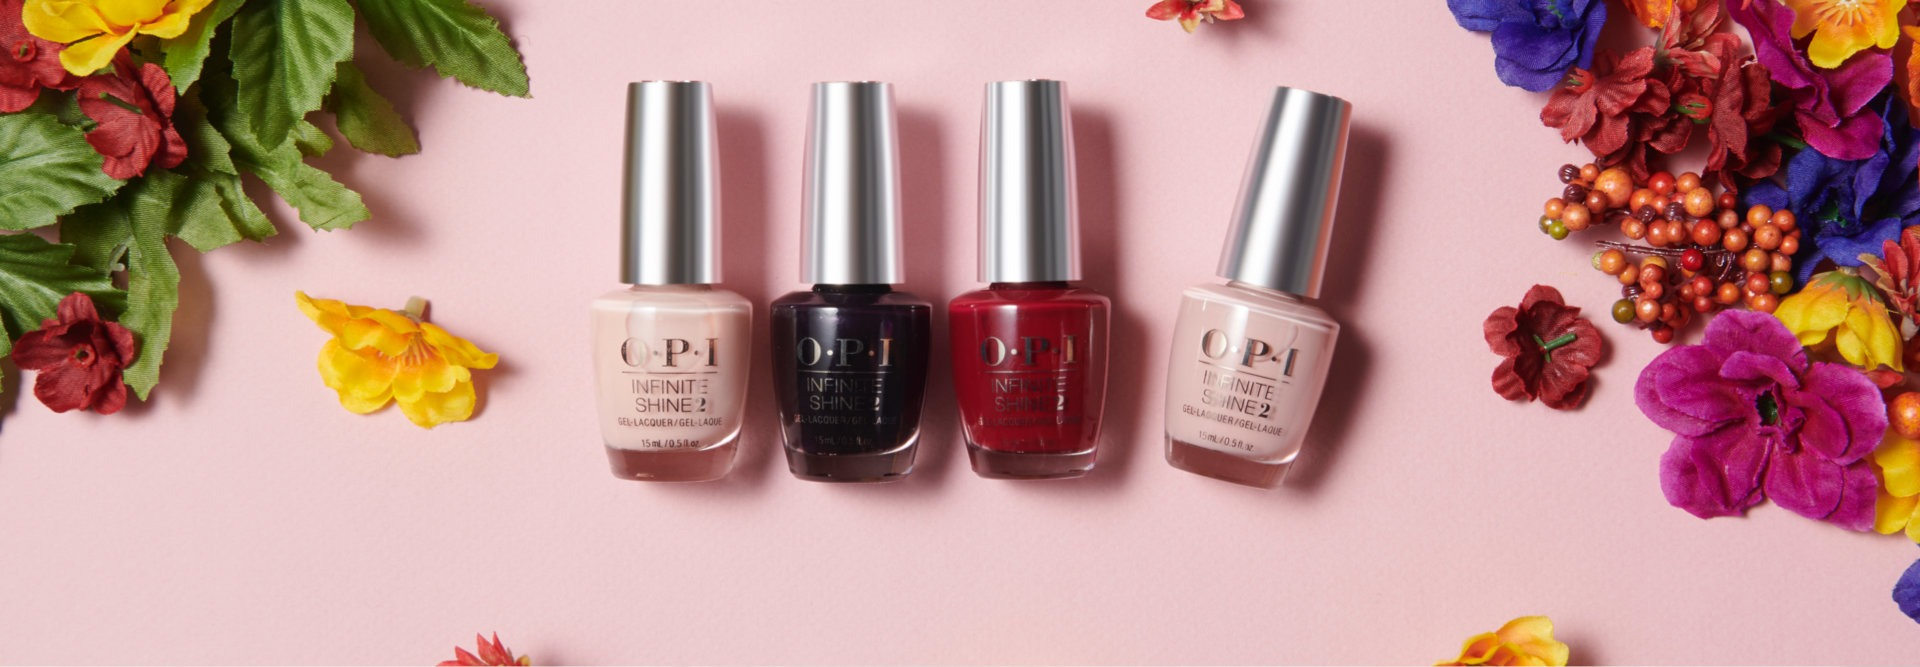 OPI Infinite Shine long wear nail polish